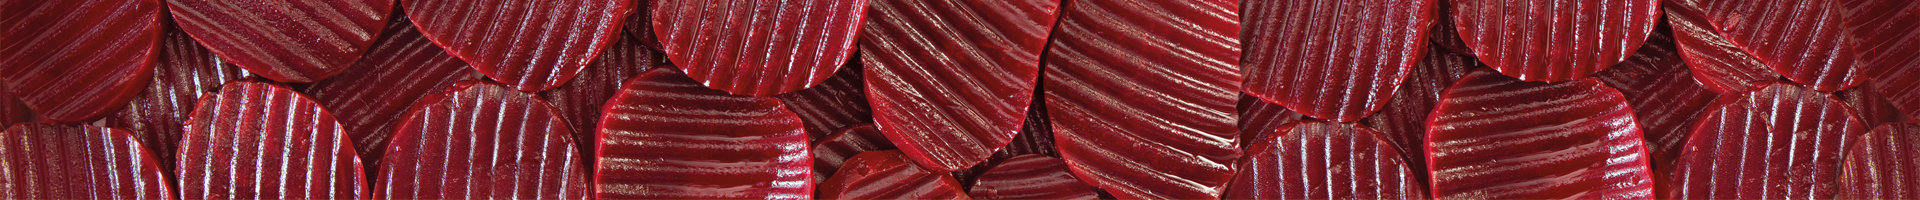 sliced-beetroot-banner